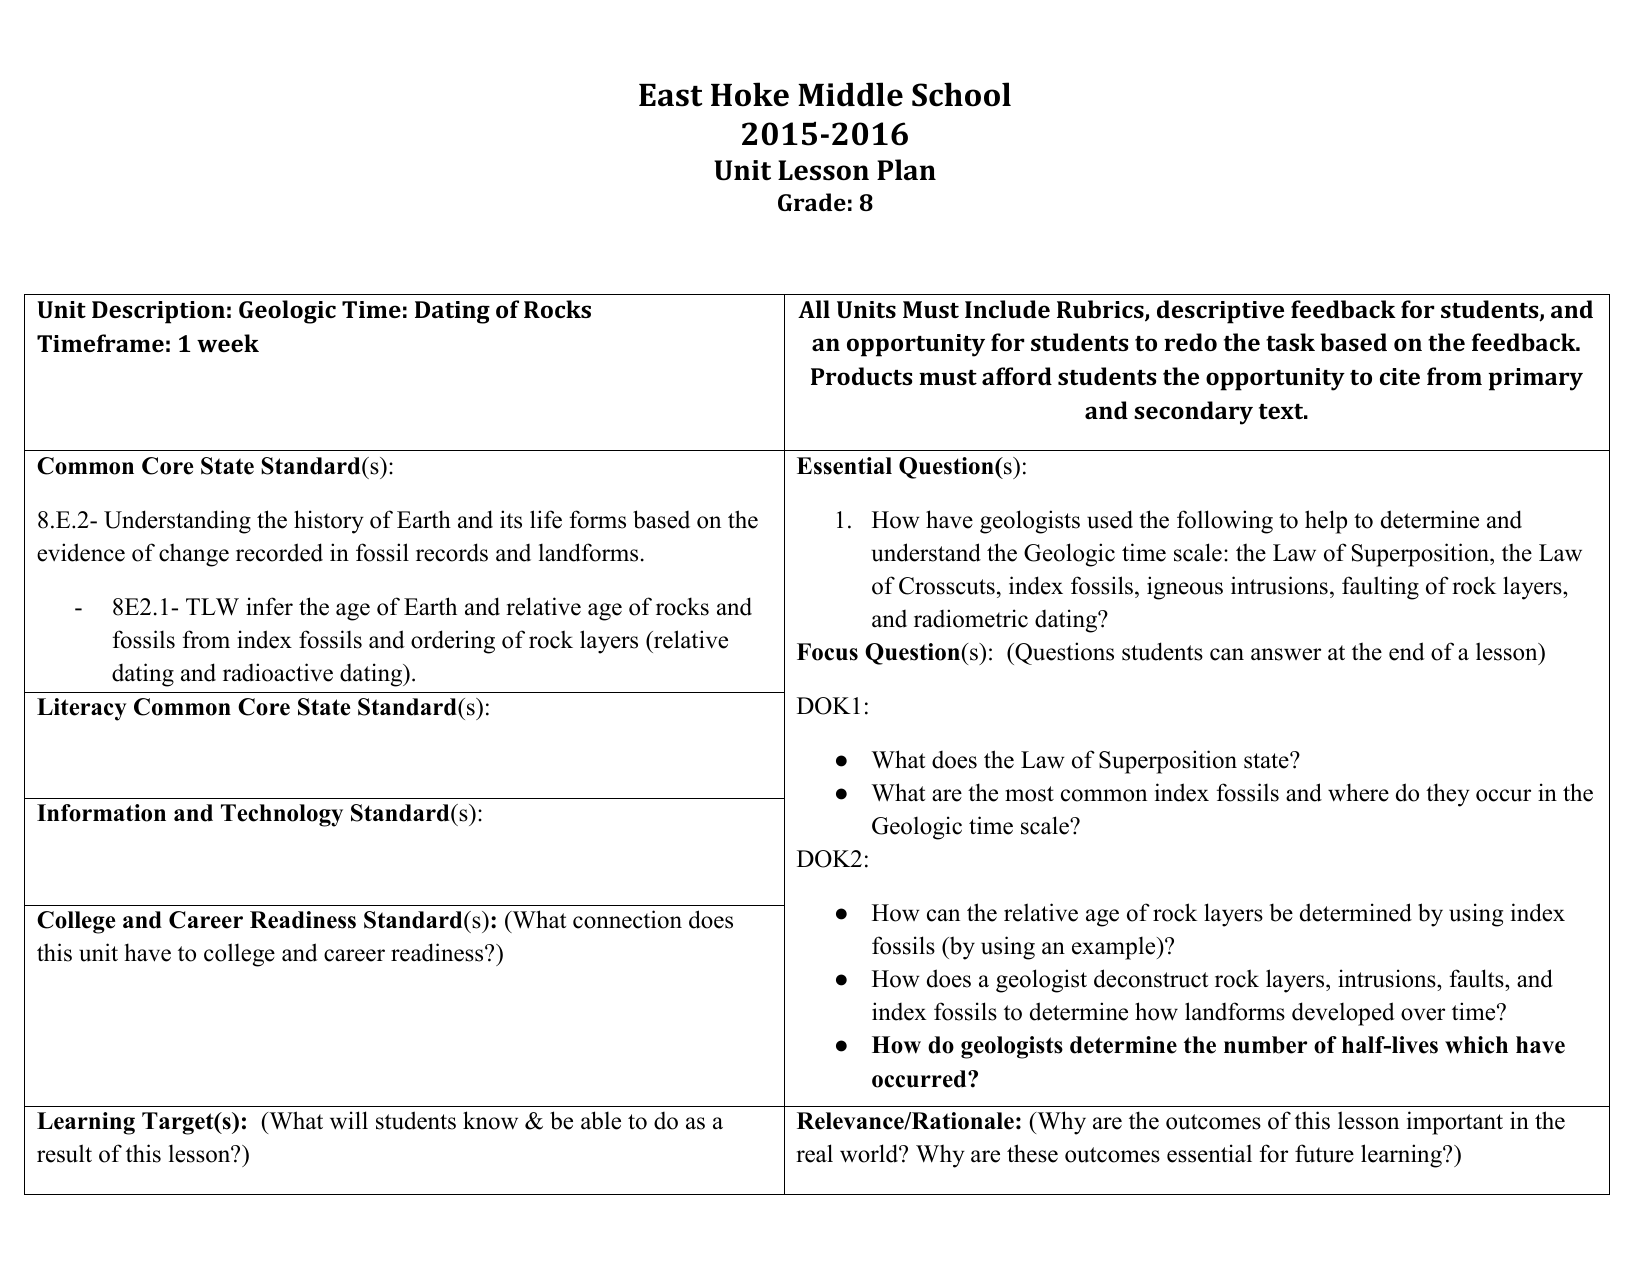 Radioactive Dating Worksheet Middle School Radioactive Dating Worksheet Middle School